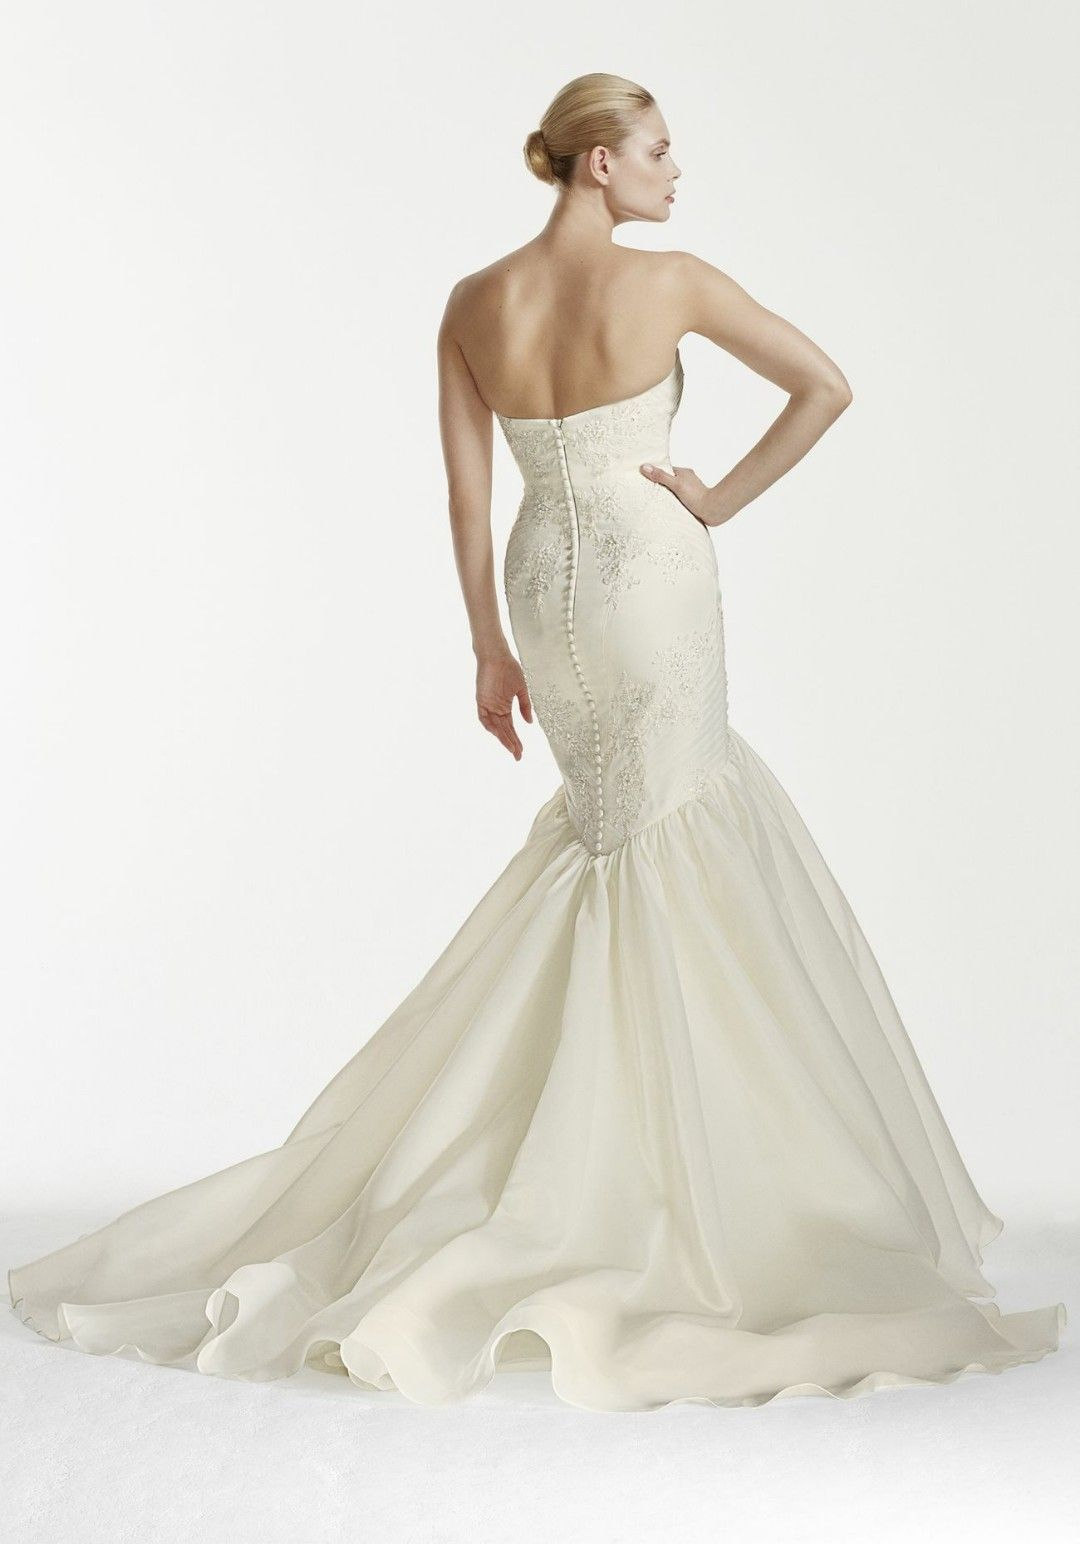 Zac posen wedding dress  Truly Zac Posen Collection for Davidus Bridal  Bridal GownMermaid